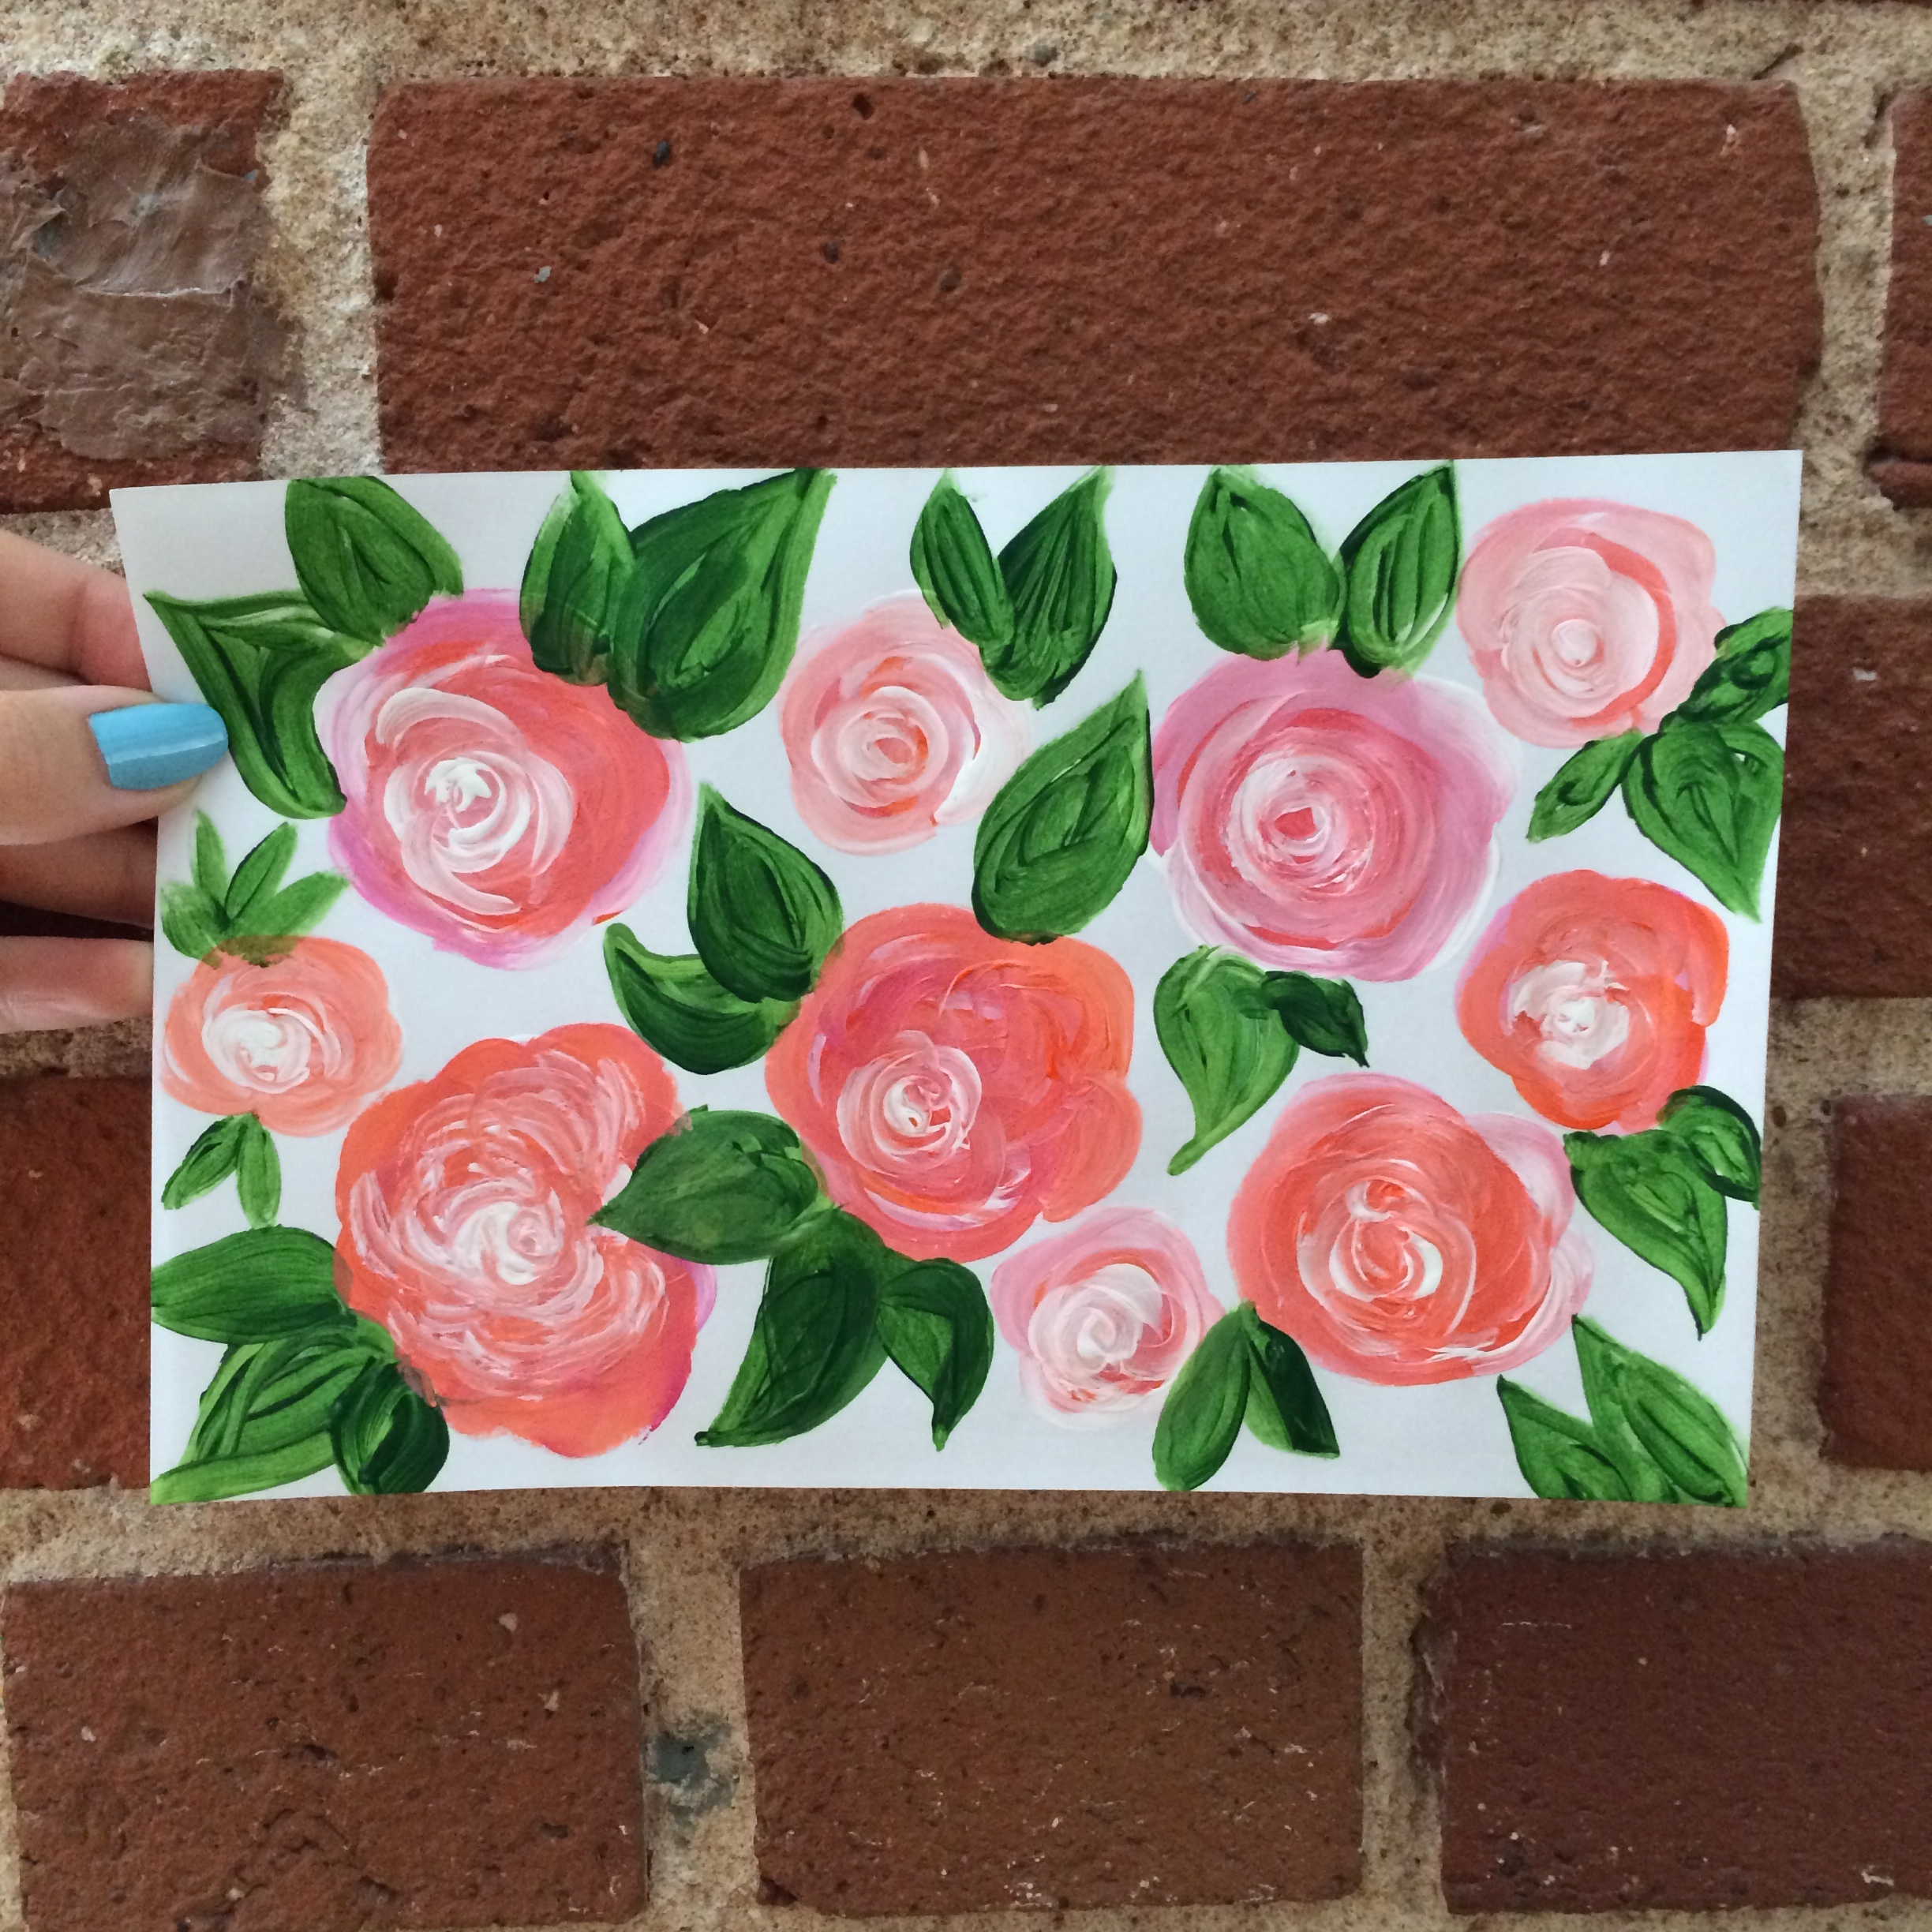 Rose Painting | MrsAmberApple